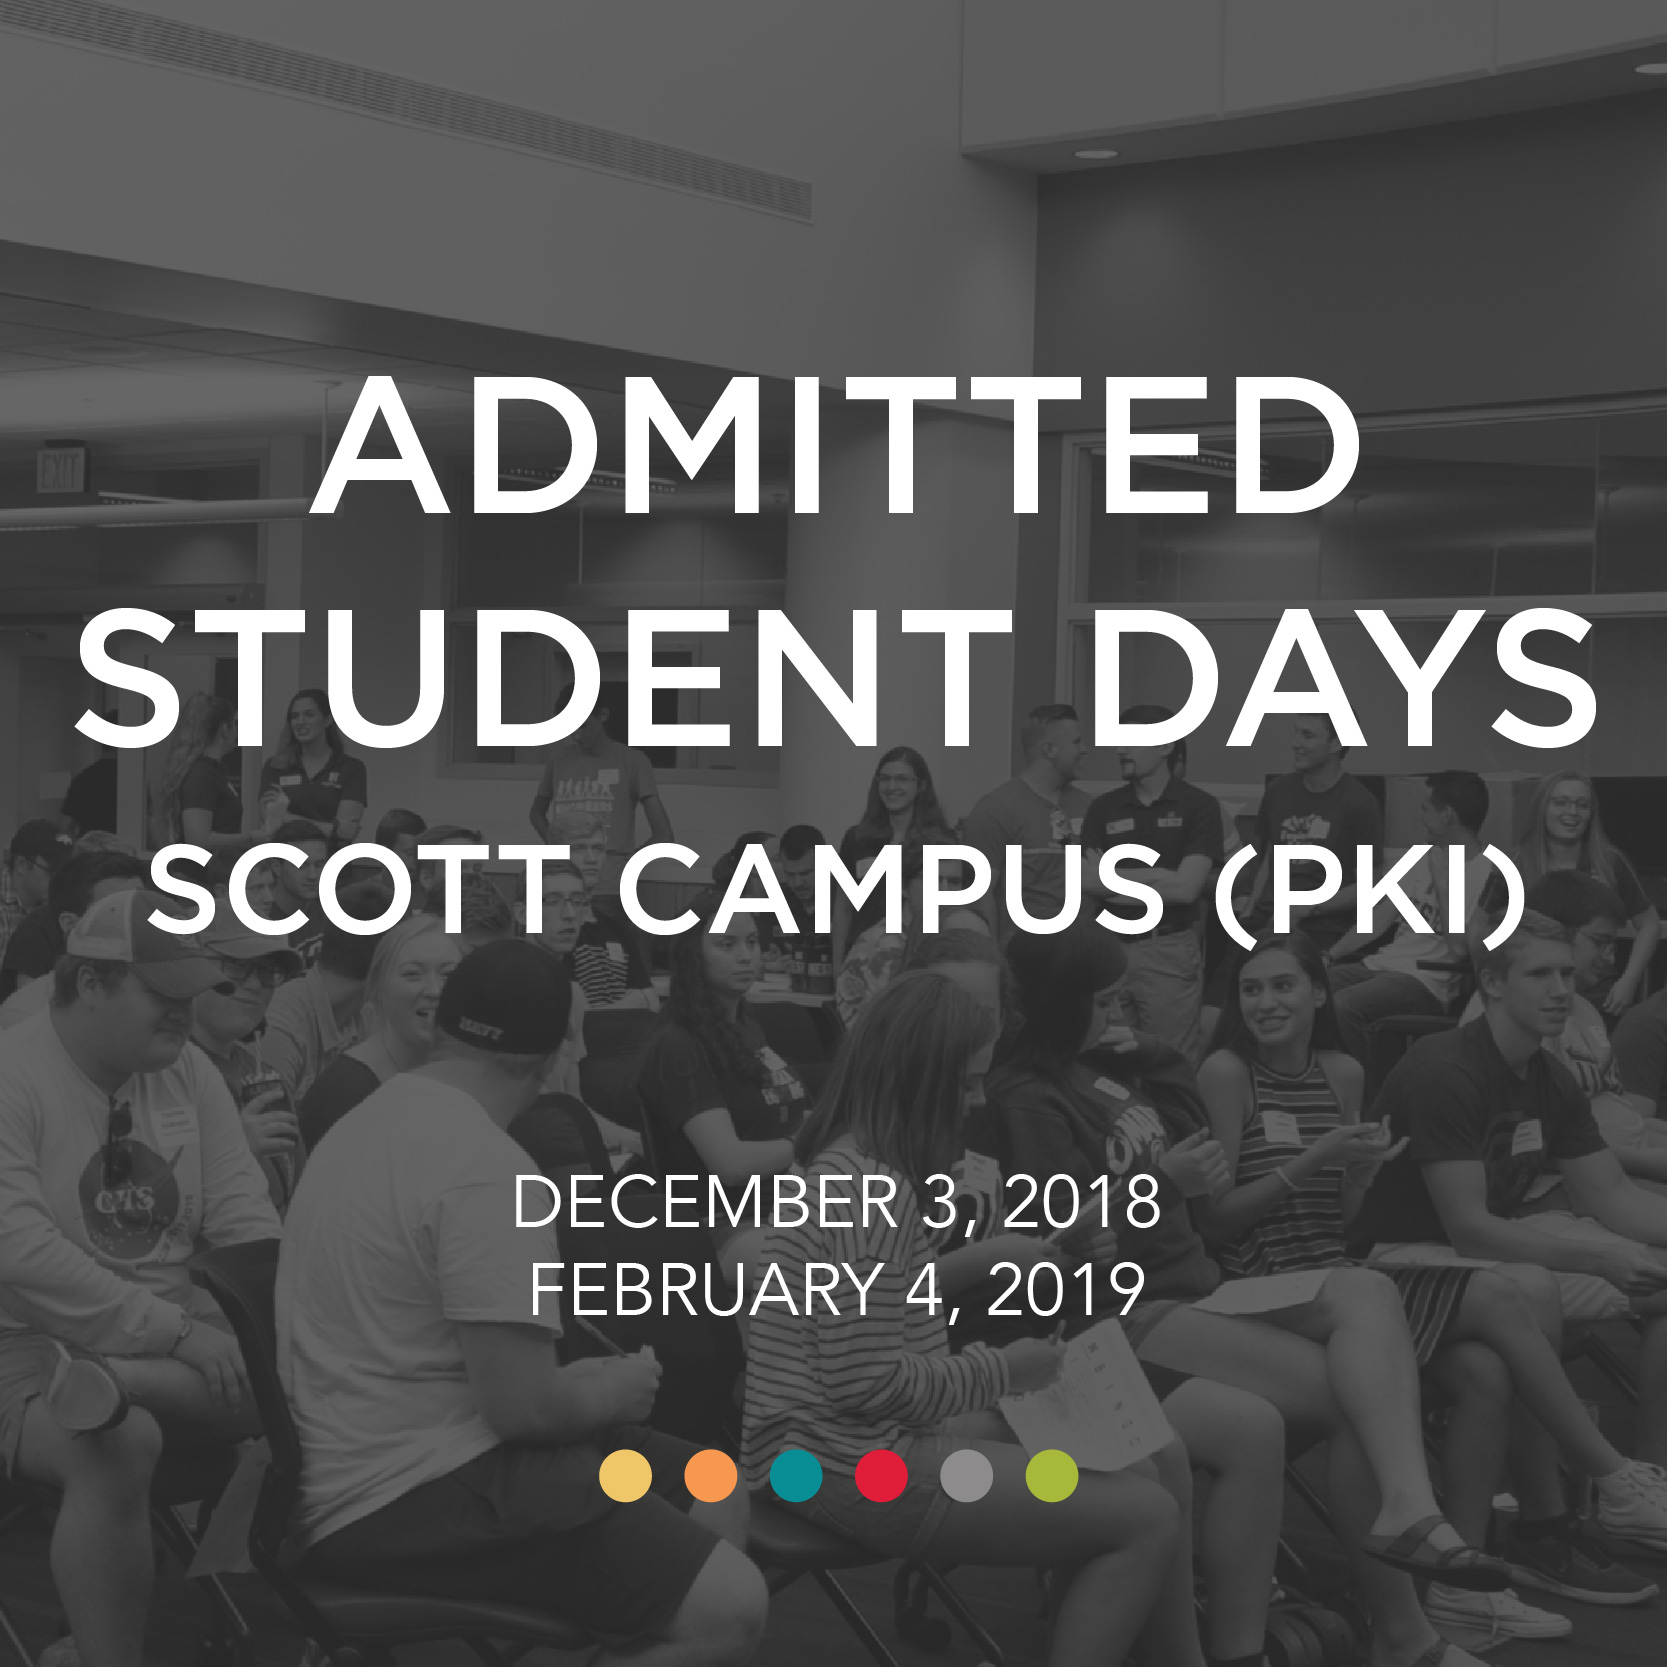 Admitted Student Days- Dec. 3, 2018 and Feb. 4, 2019